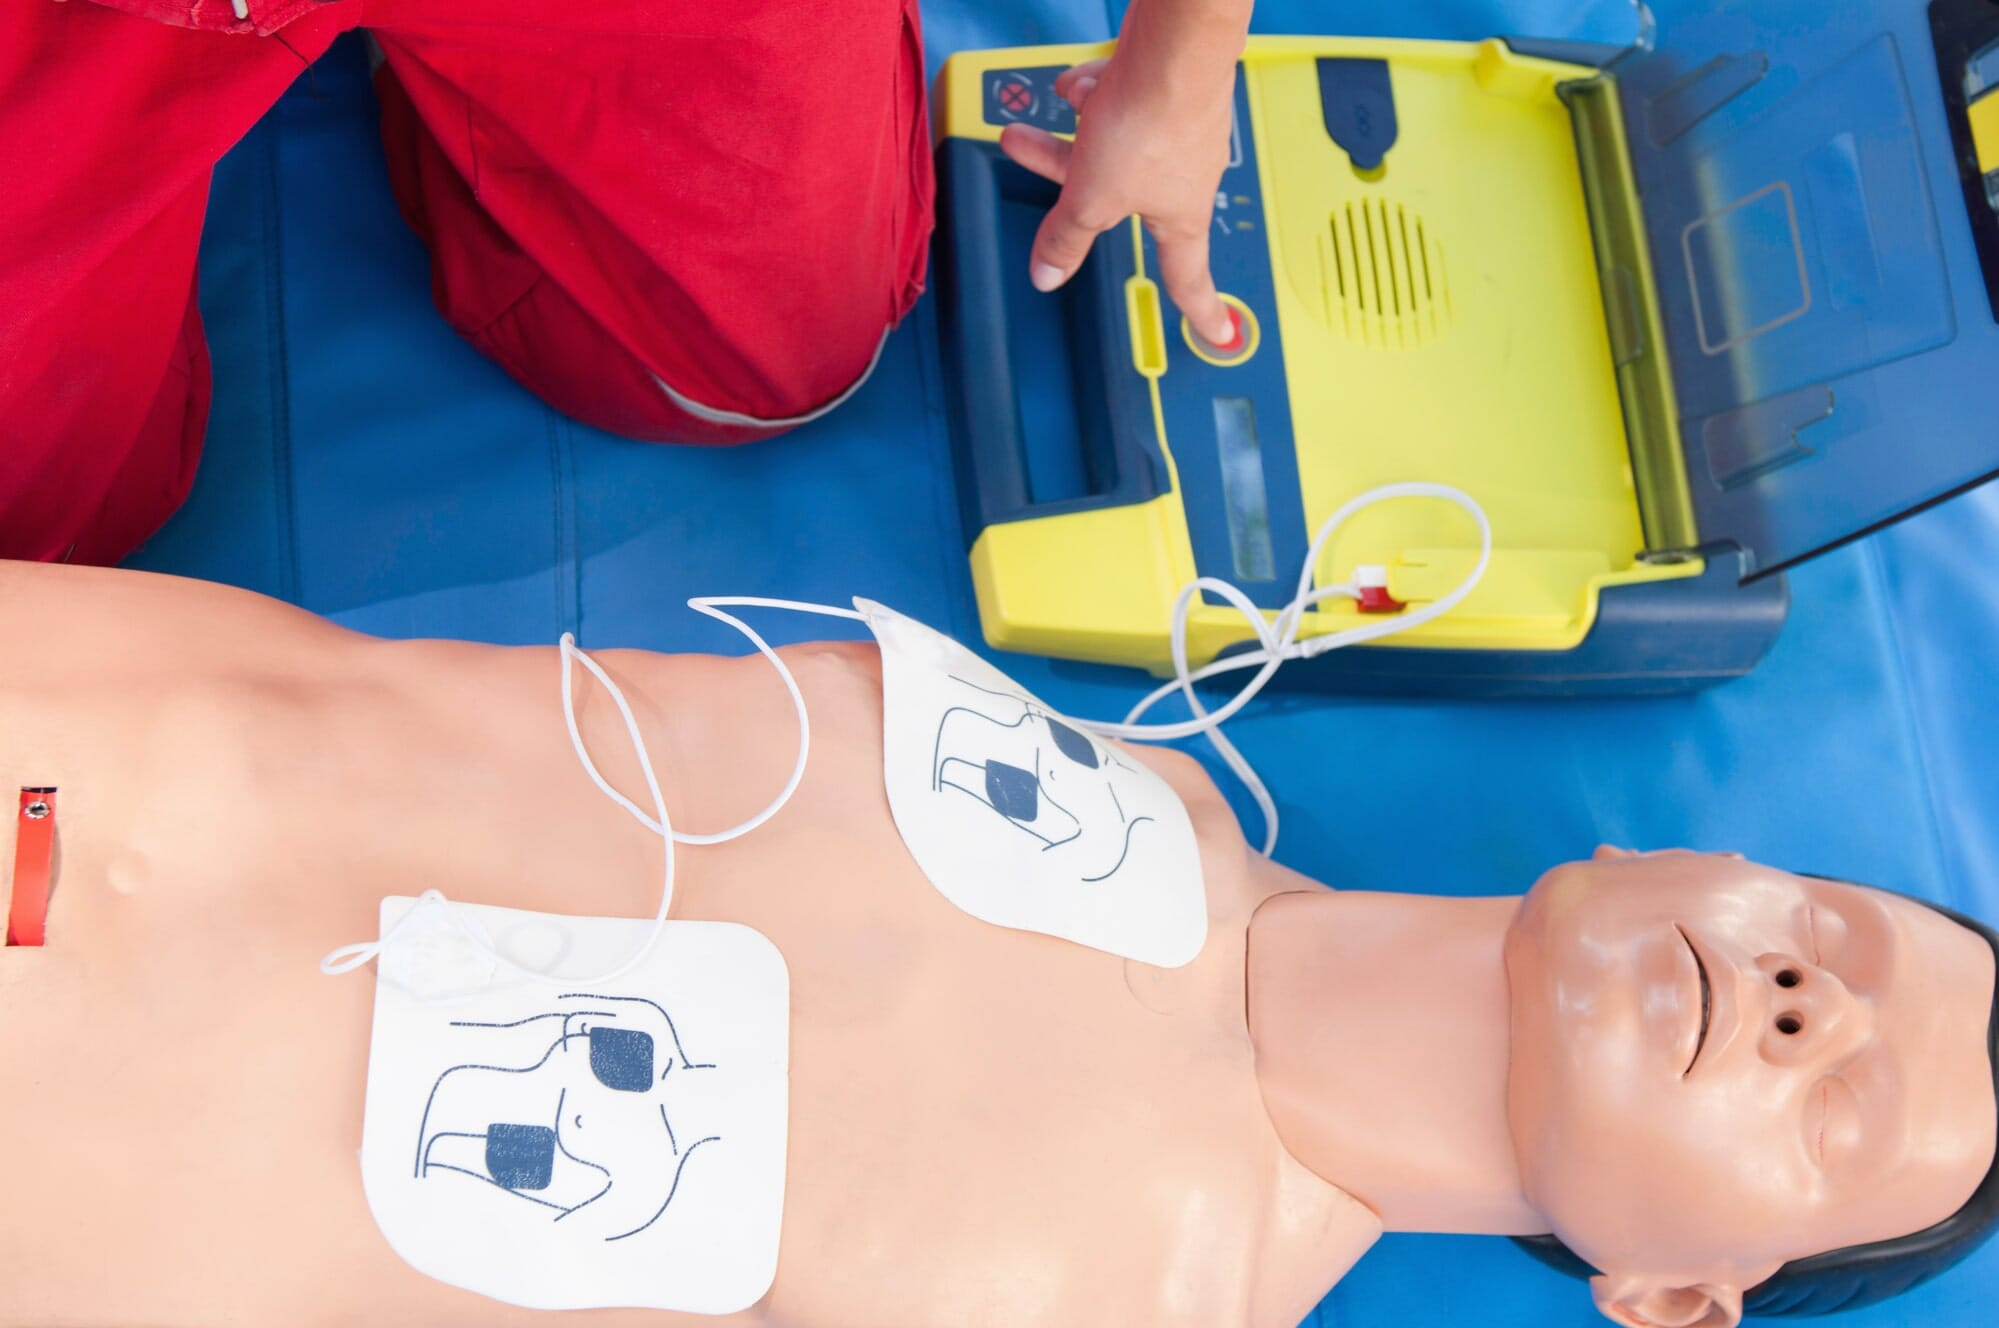 different types of pacemakers and implantable defibrillators